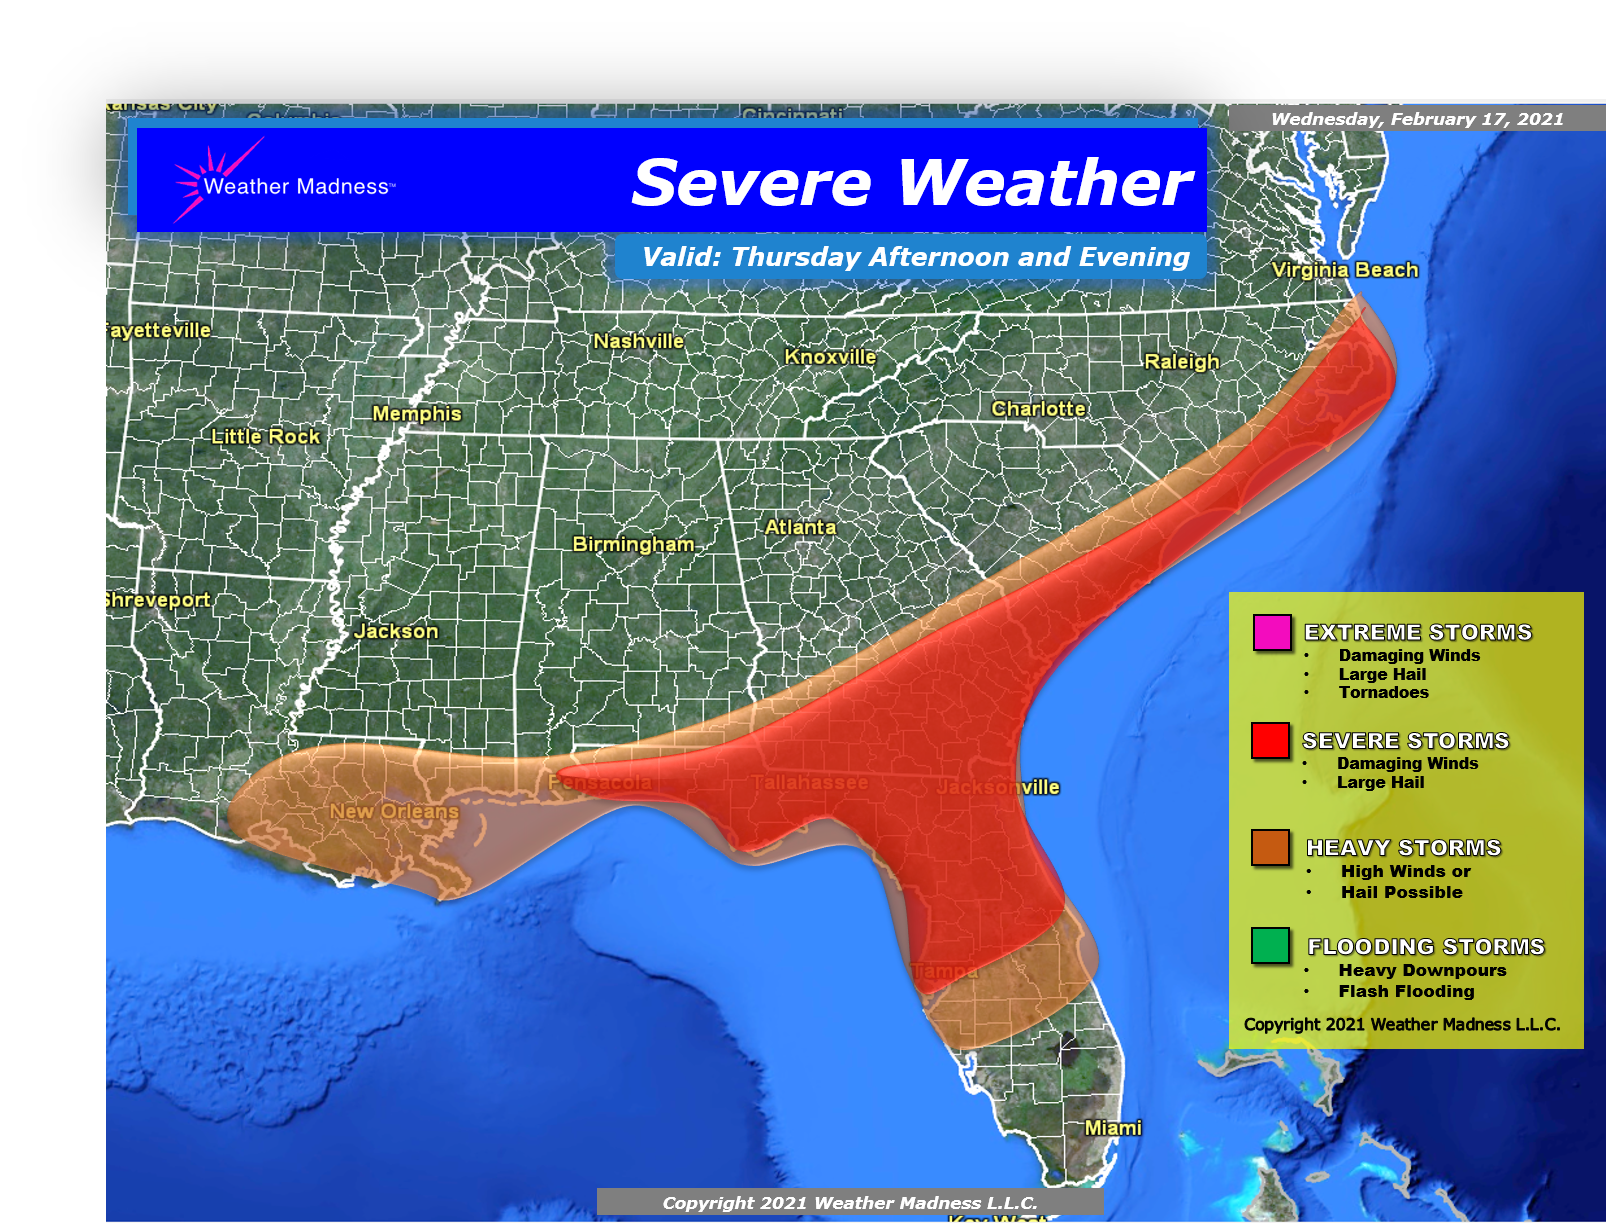 Severe Weather Thursday Afternoon and Evening